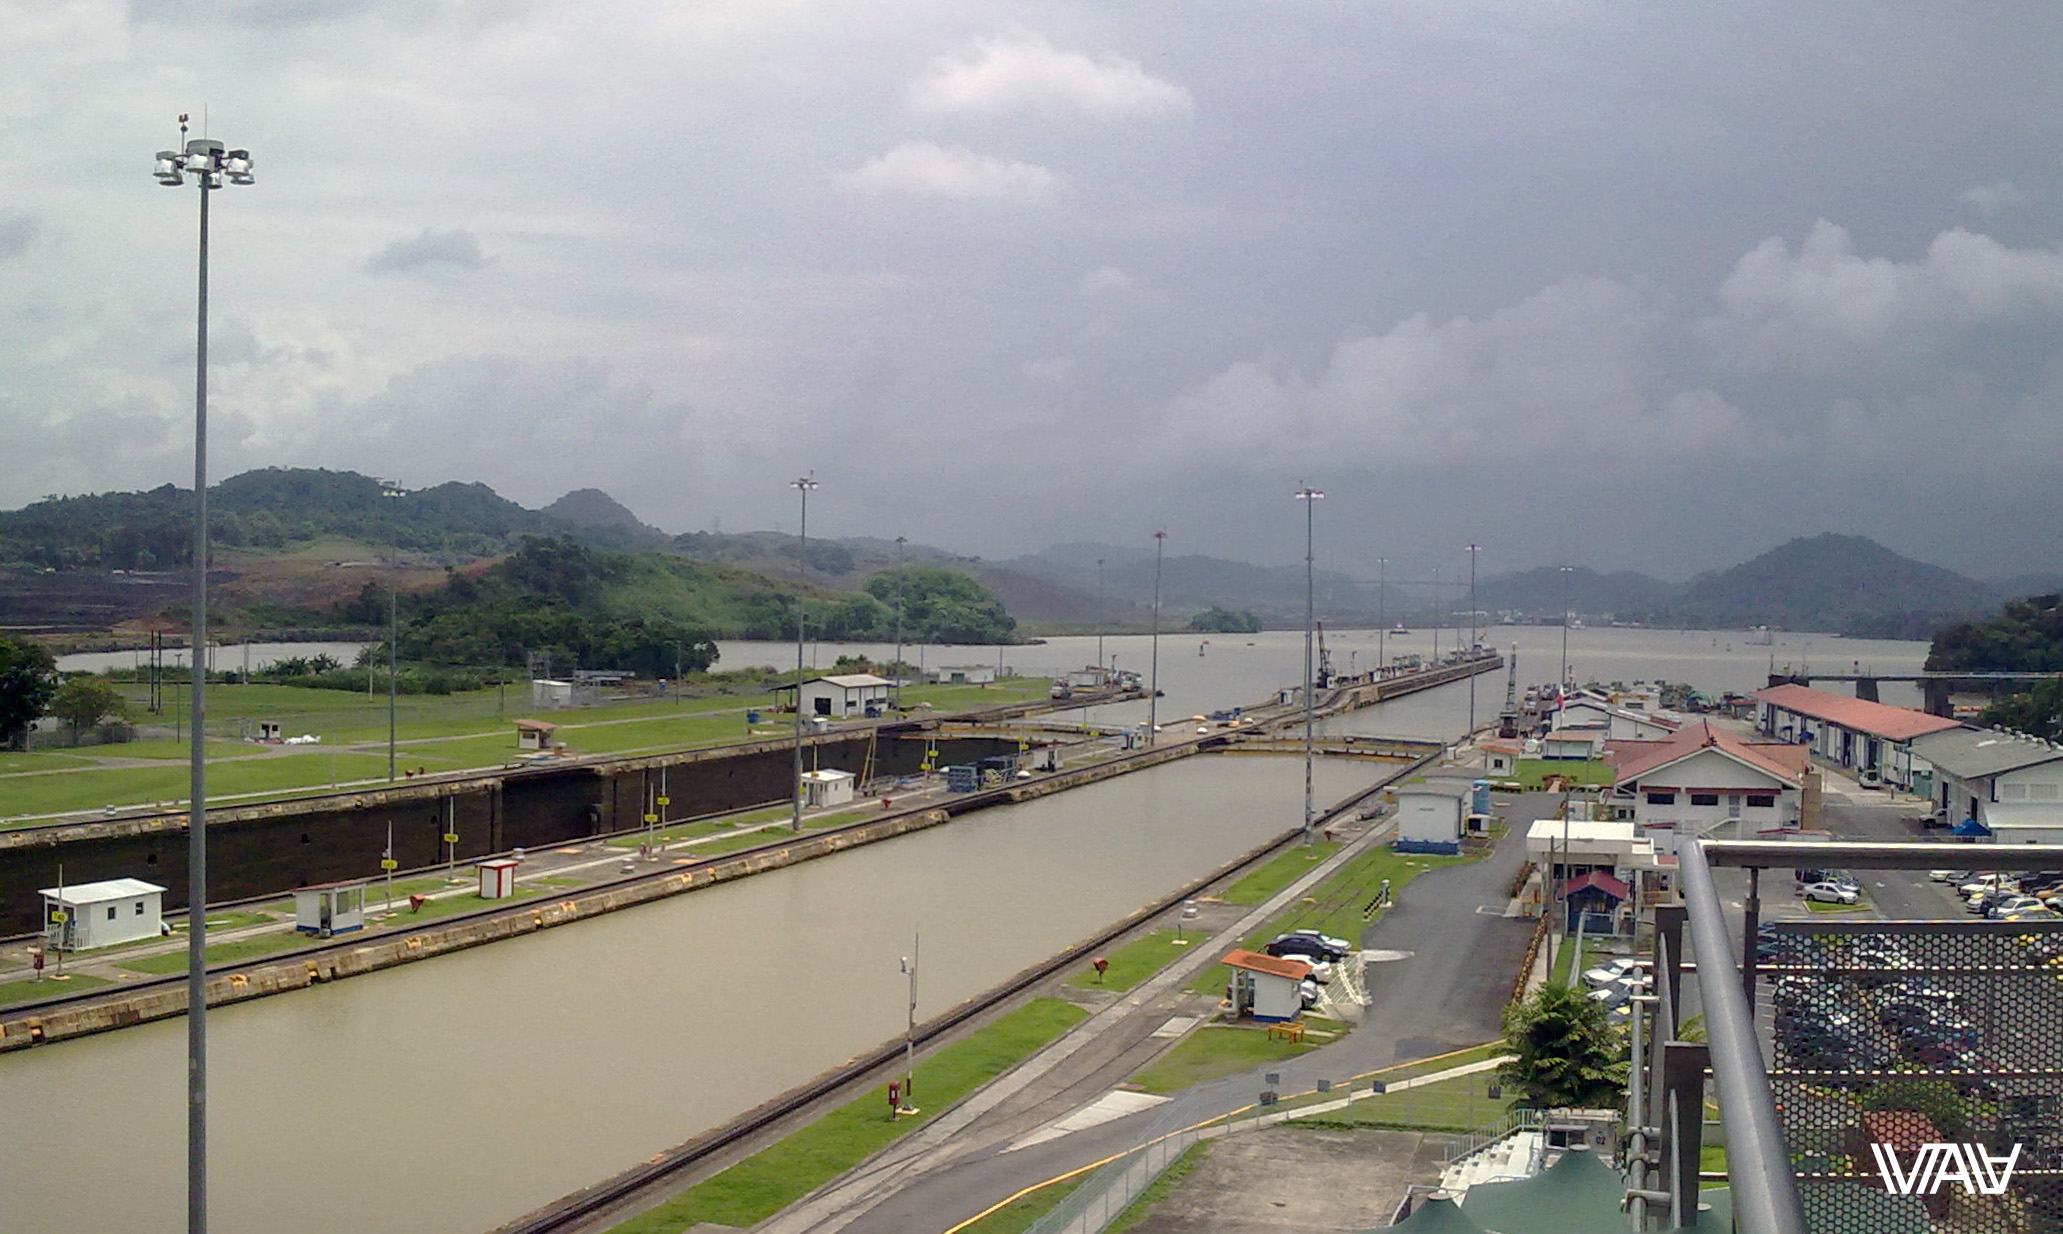 Enter of the Panama Canal from the Atlantic Ocean. Panama Canal, Panama